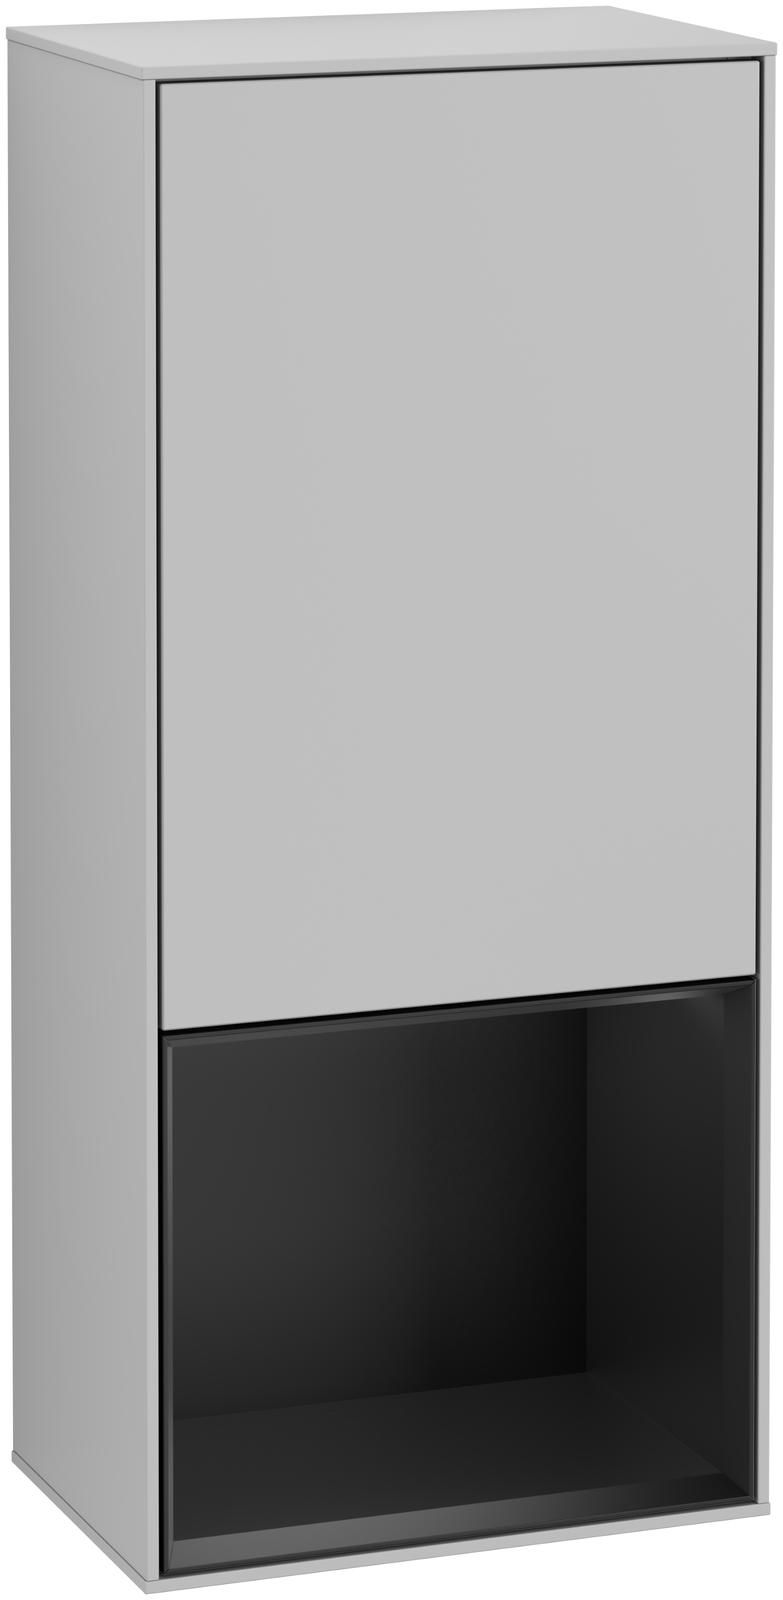 Villeroy & Boch Finion F55 Seitenschrank mit Regalelement 1 Tür Anschlag rechts LED-Beleuchtung B:41,8xH:93,6xT:27cm Front, Korpus: Light Grey Matt, Regal: Black Matt Lacquer F550PDGJ